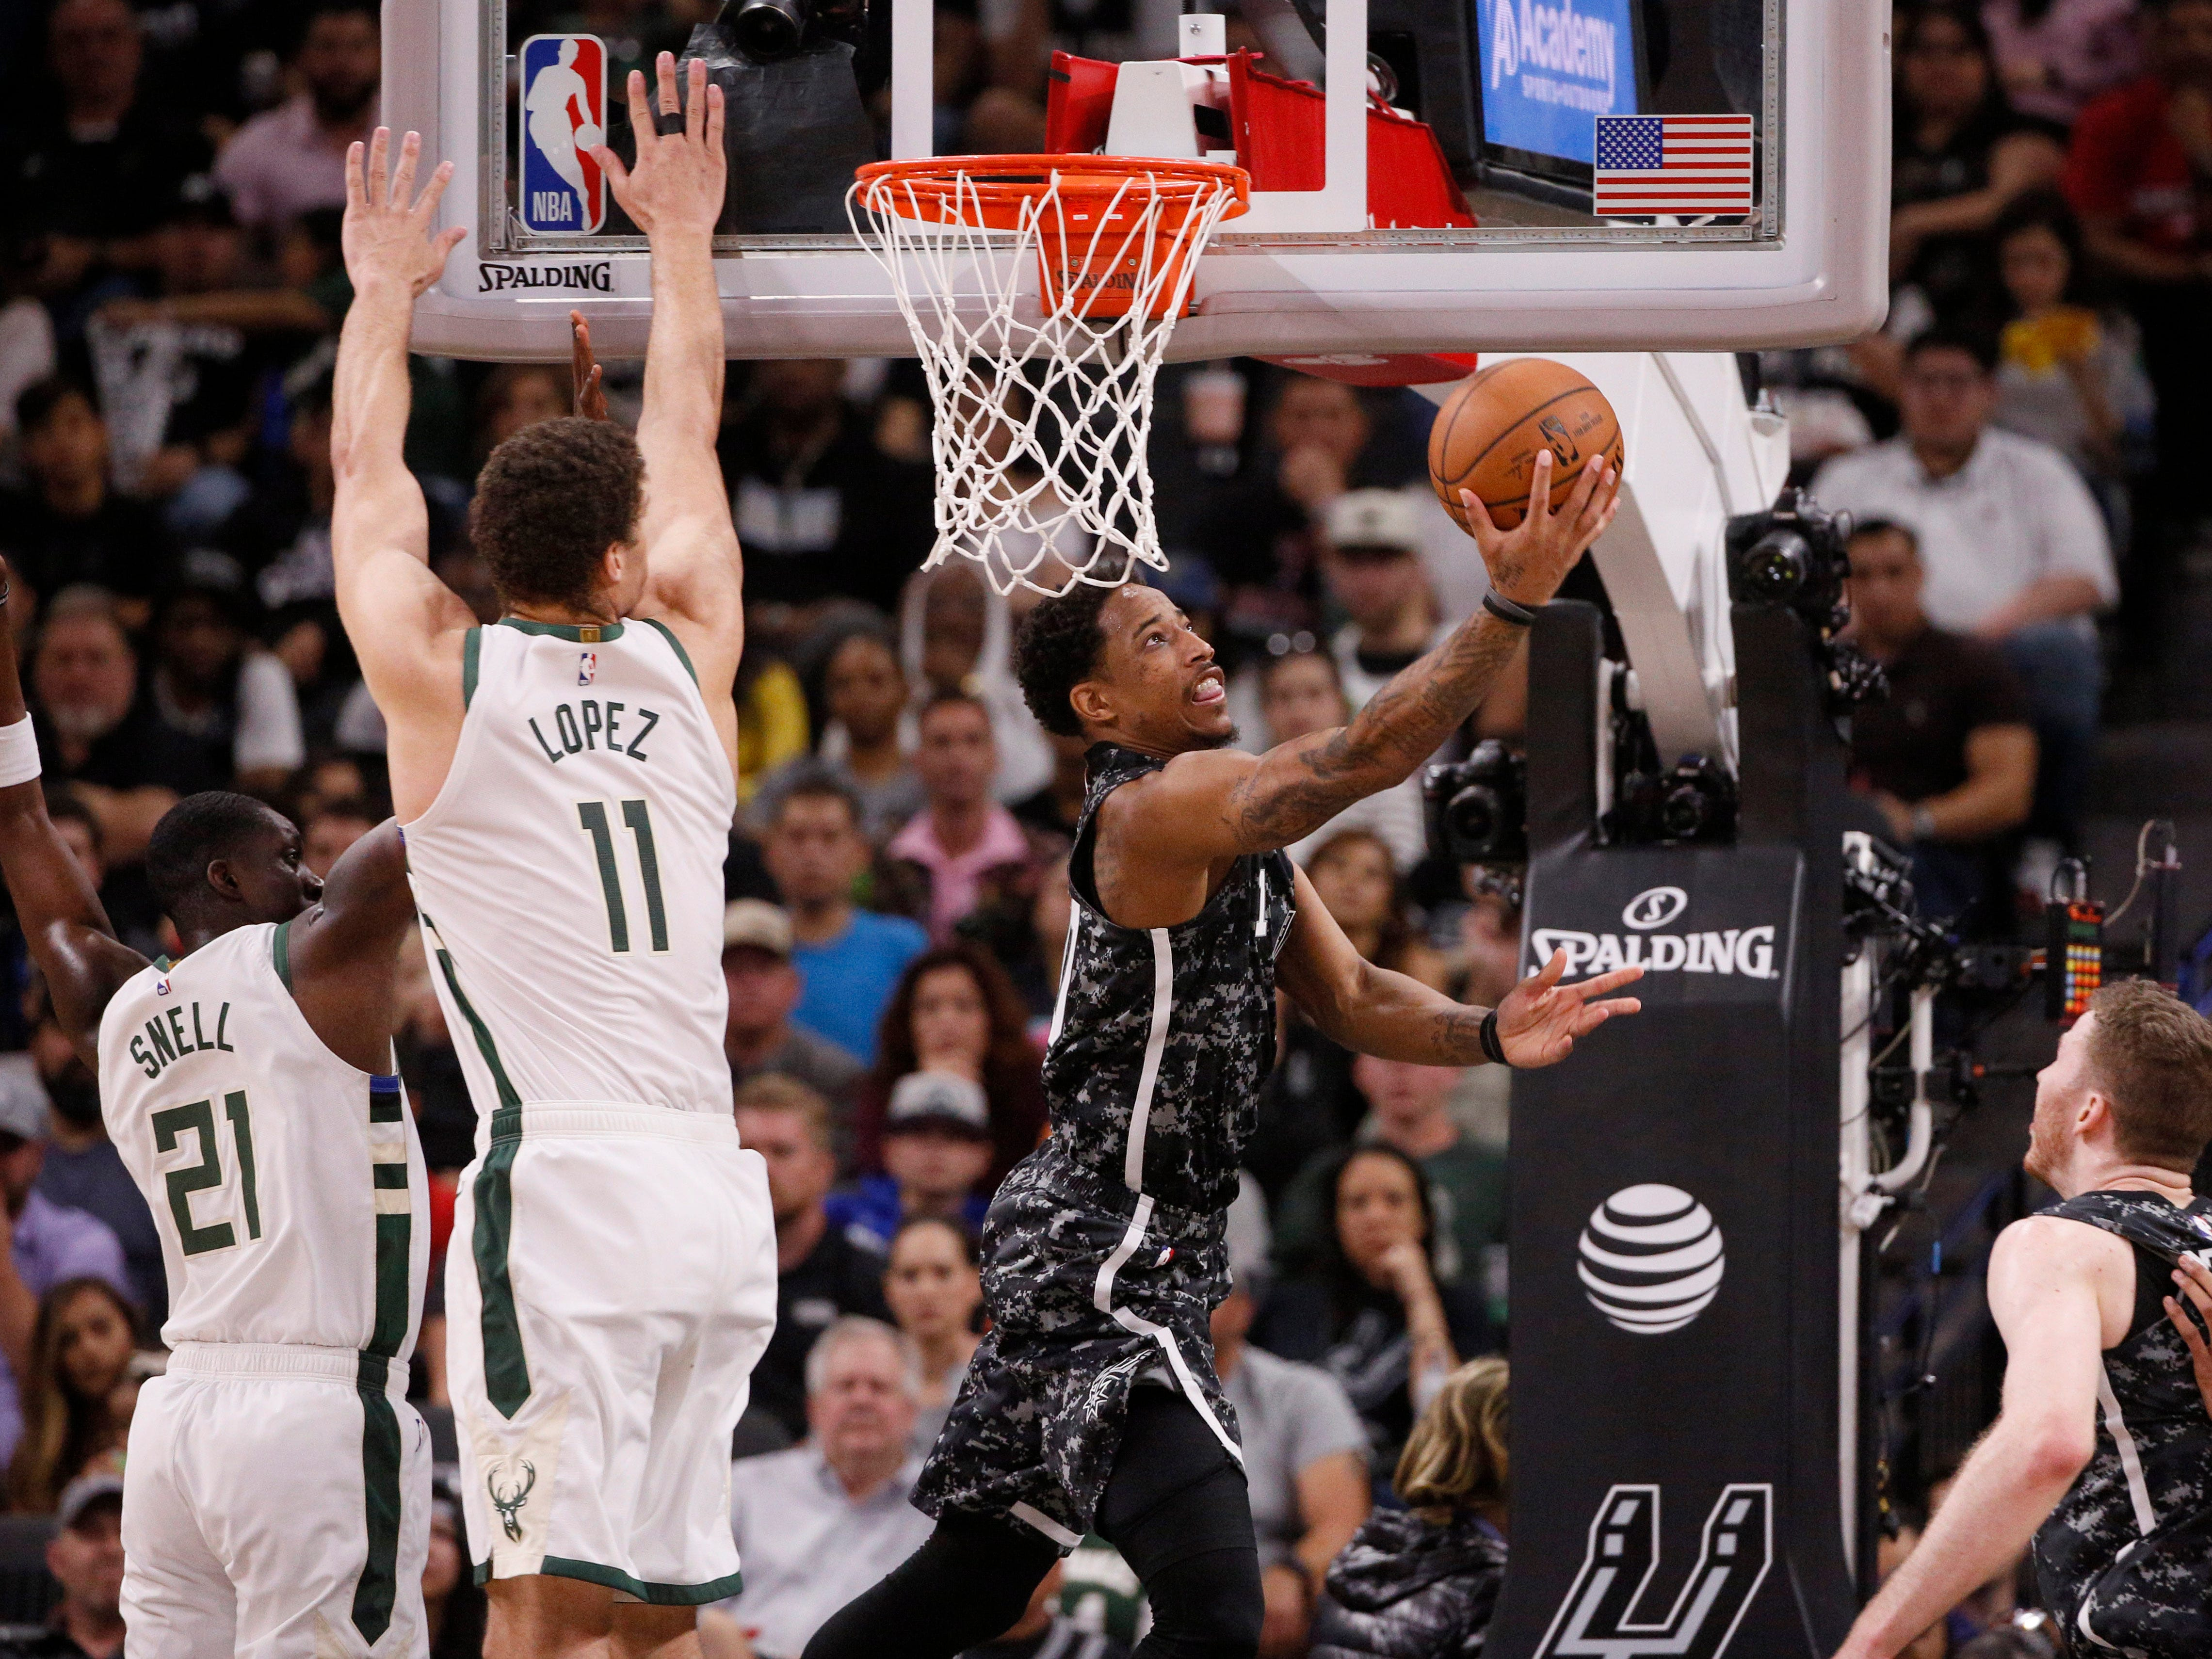 Spurs guard DeMar DeRozan gets past Tony Snell and Brook Lopez of the Bucks for a reverse layup on Sunday.